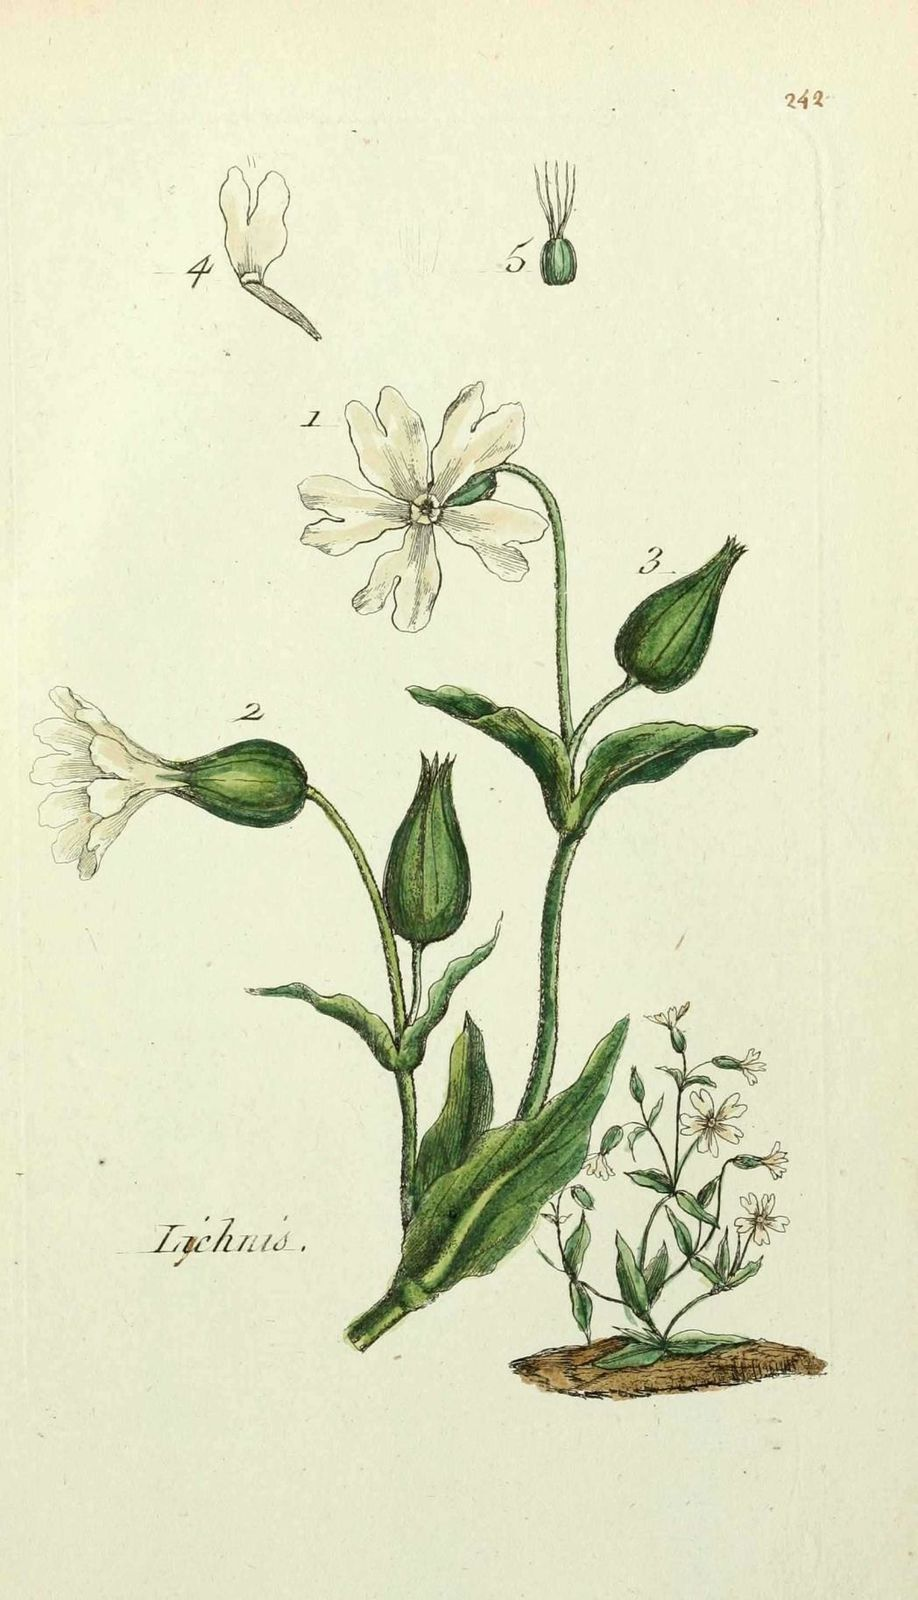 lychnis des champs - lychnis dioica ( lychnis sauvage, oeil